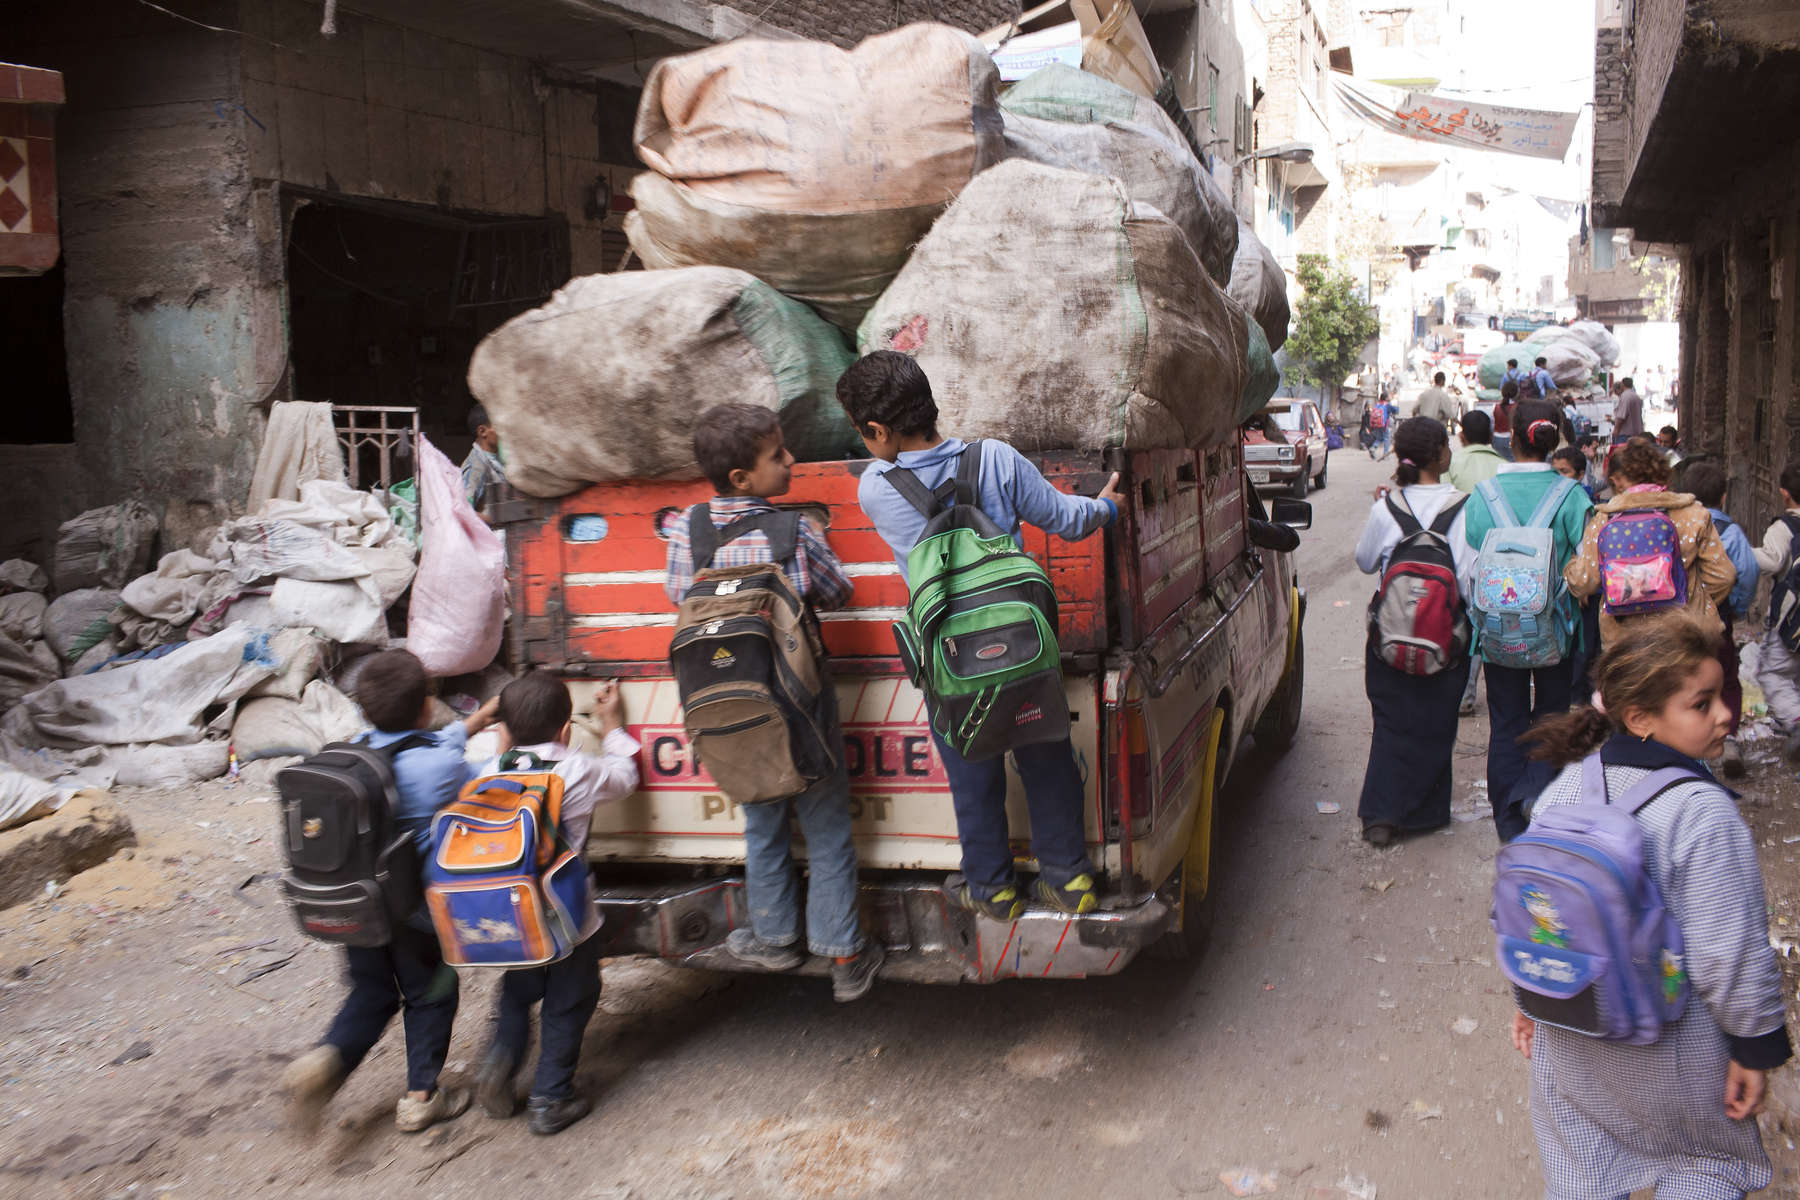 "Schoolchildren hitch a ride on the back of a garbage collection truck driving through the central street of Moqqatam.Moqqatam is a suburb on the edge of Cairo and home to a people known as the Zabaleen, said to be the world's greatest waste recyclers. The Zabaleen, which means plainly enough, ""the garbage collectors"", pick up around 4,000 tons of Cairo's waste each day. American researchers have shown that the Zabaleen recycle 85% of this garbage into something useful: a higher rate than anywhere else on the planet. The men do two shifts leaving about 4am and again around 9am. The rubbish is taken back to Moqqatam for the women to sit in and sort through. The organic waste is fed to livestock (the Zabaleen are originally swine herders), the rest sorted for recycling. The future of the Zabaleen is uncertain: if the Cairo authorities get their way, this community of around 25,000 Coptic Christians living in a Muslim country will be gone, and with it, their unique lifestyle."